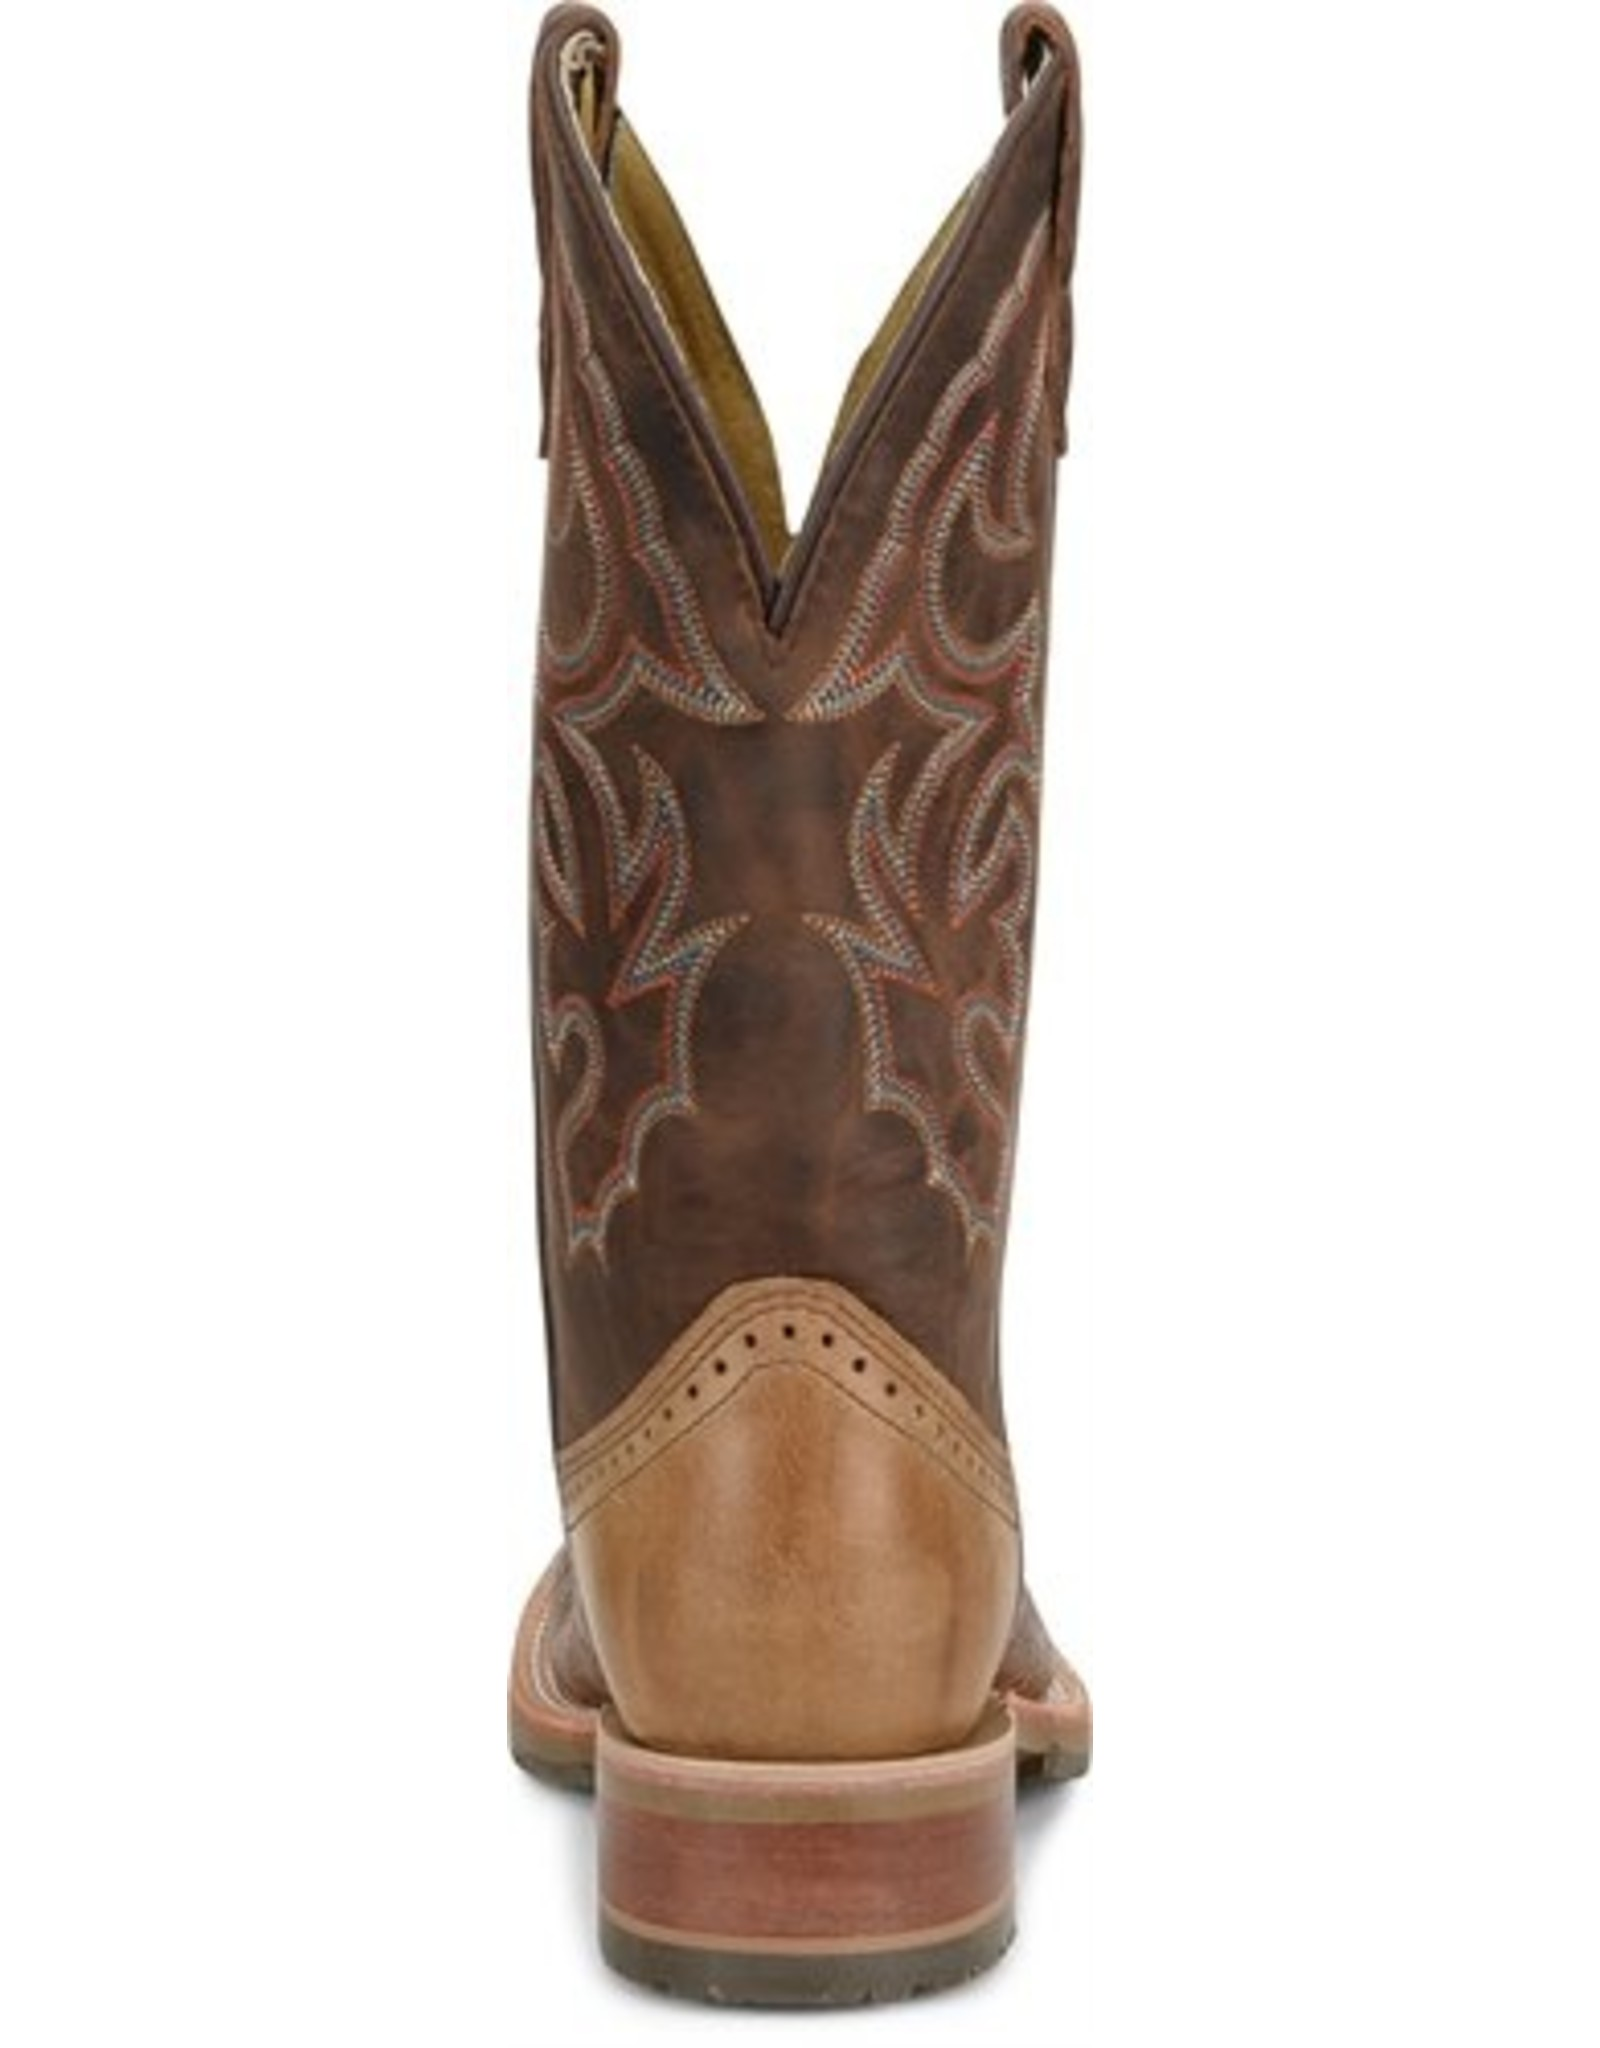 Boots-Men DOUBLE H Harshaw DH4645